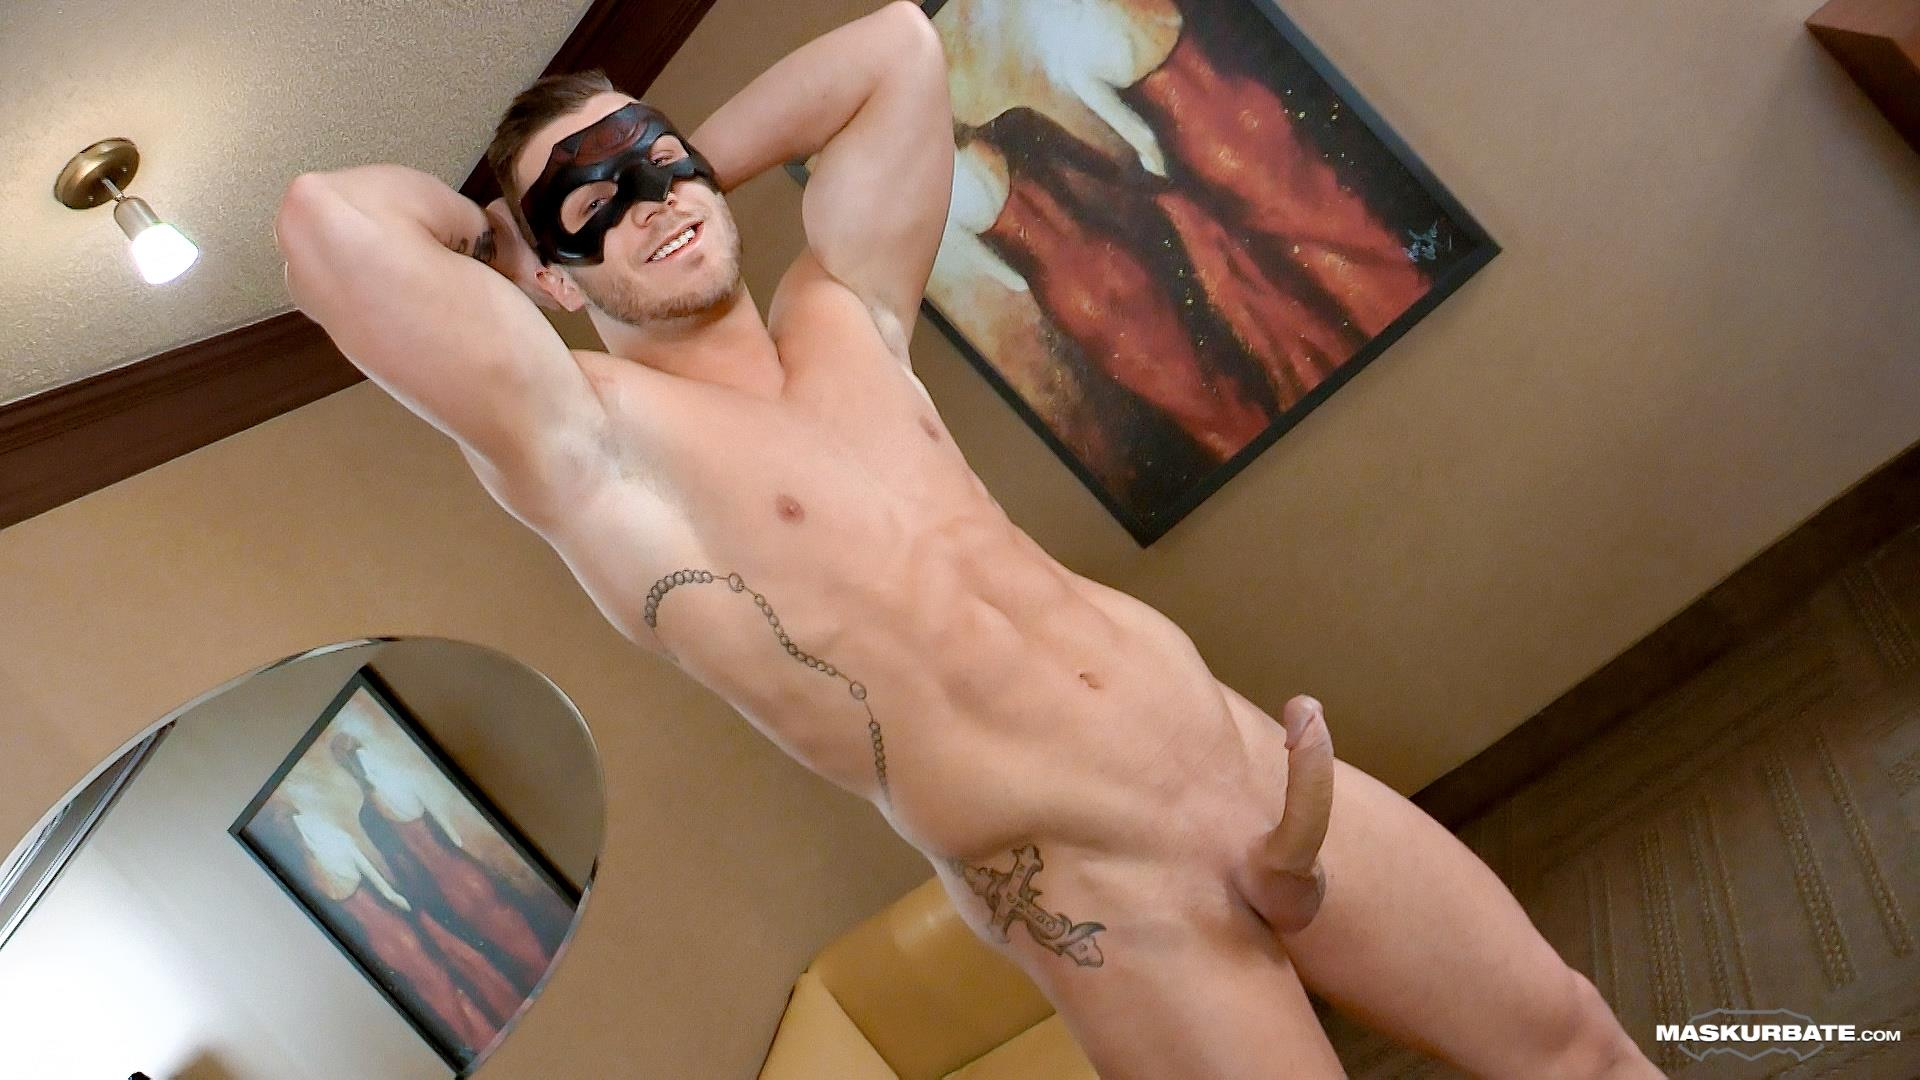 Maskurbate-Mike-Muscle-Hunk-With-A-Big-Uncut-Cock-Jerking-Off-Amateur-Gay-Porn-08 Bi-Curious Muscle Hunk With A Big Uncut Cock Auditions For Gay Porn